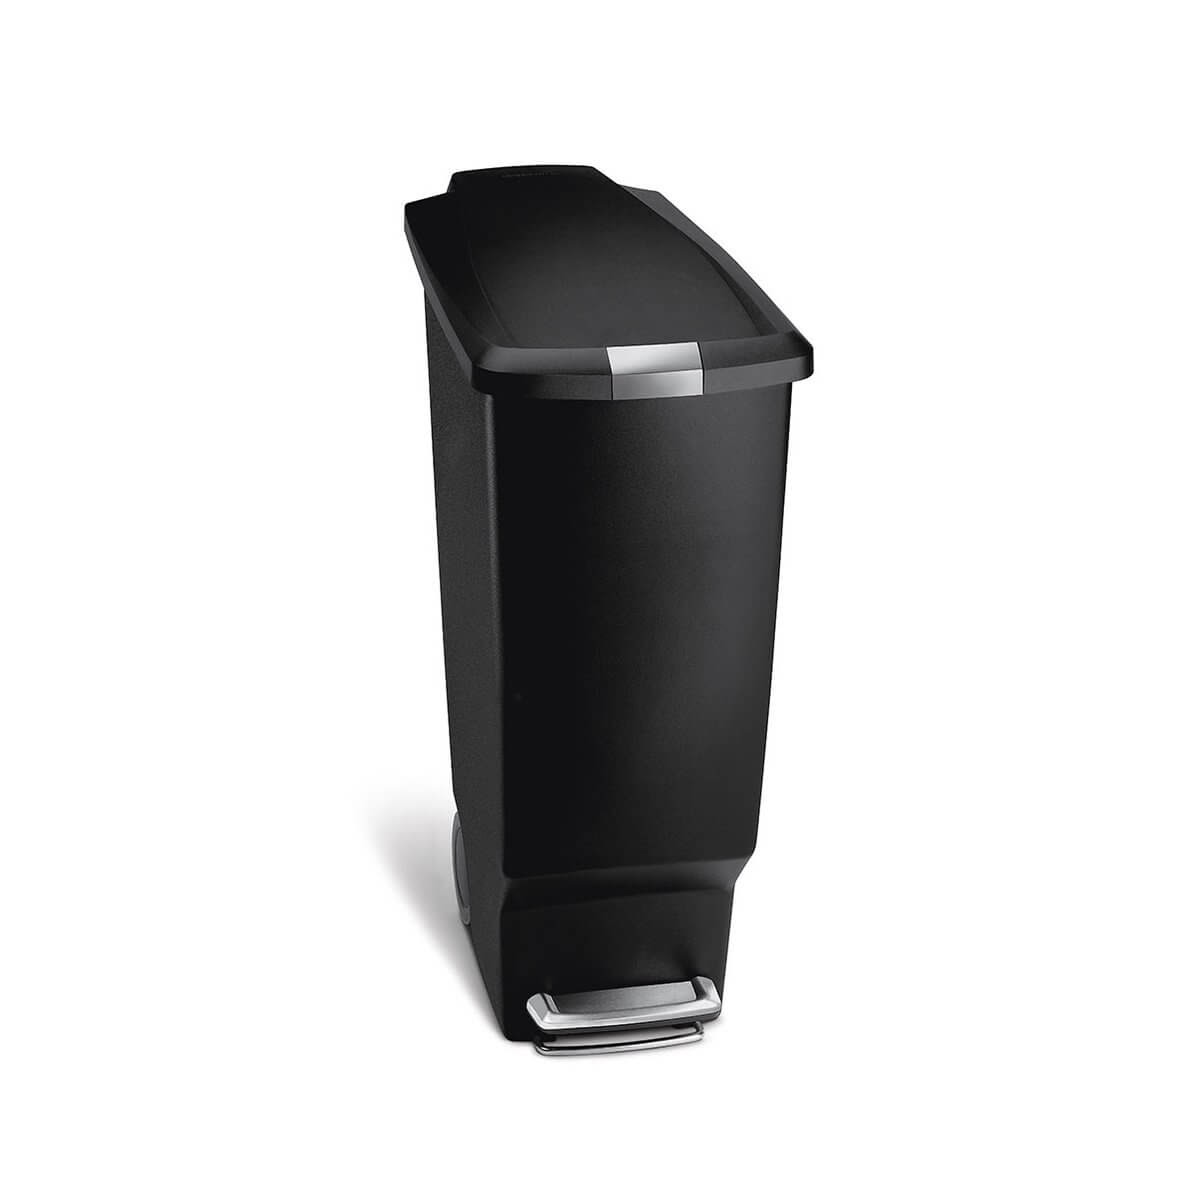 Simplehuman 40 Liter/10.6 Gallon Slim Kitchen Step Trash Can